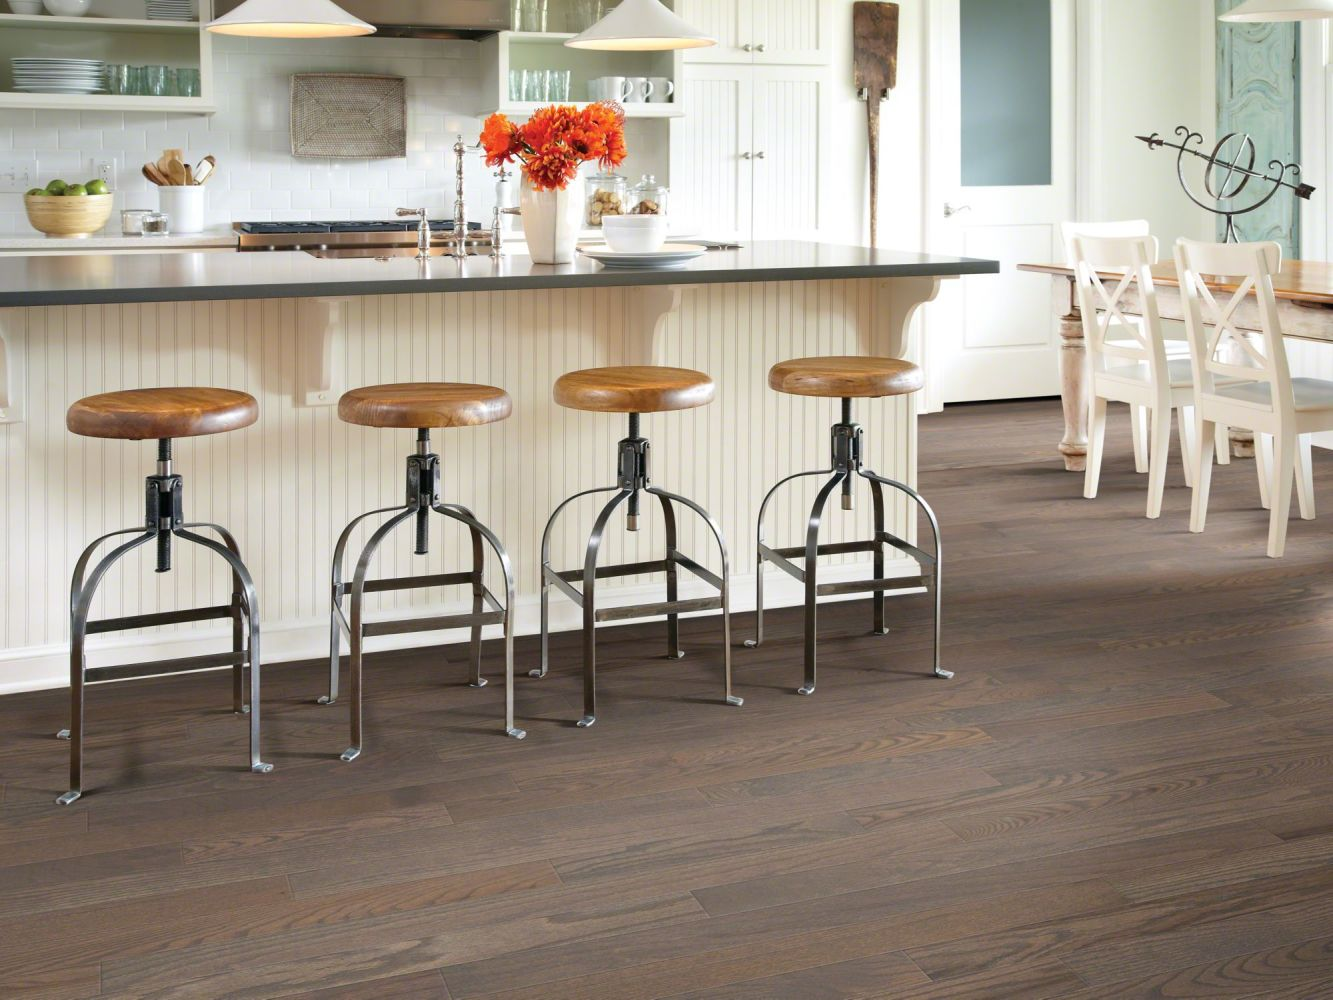 Shaw Floors Dr Horton Blairsville 3.25 Weathered 00543_DR650